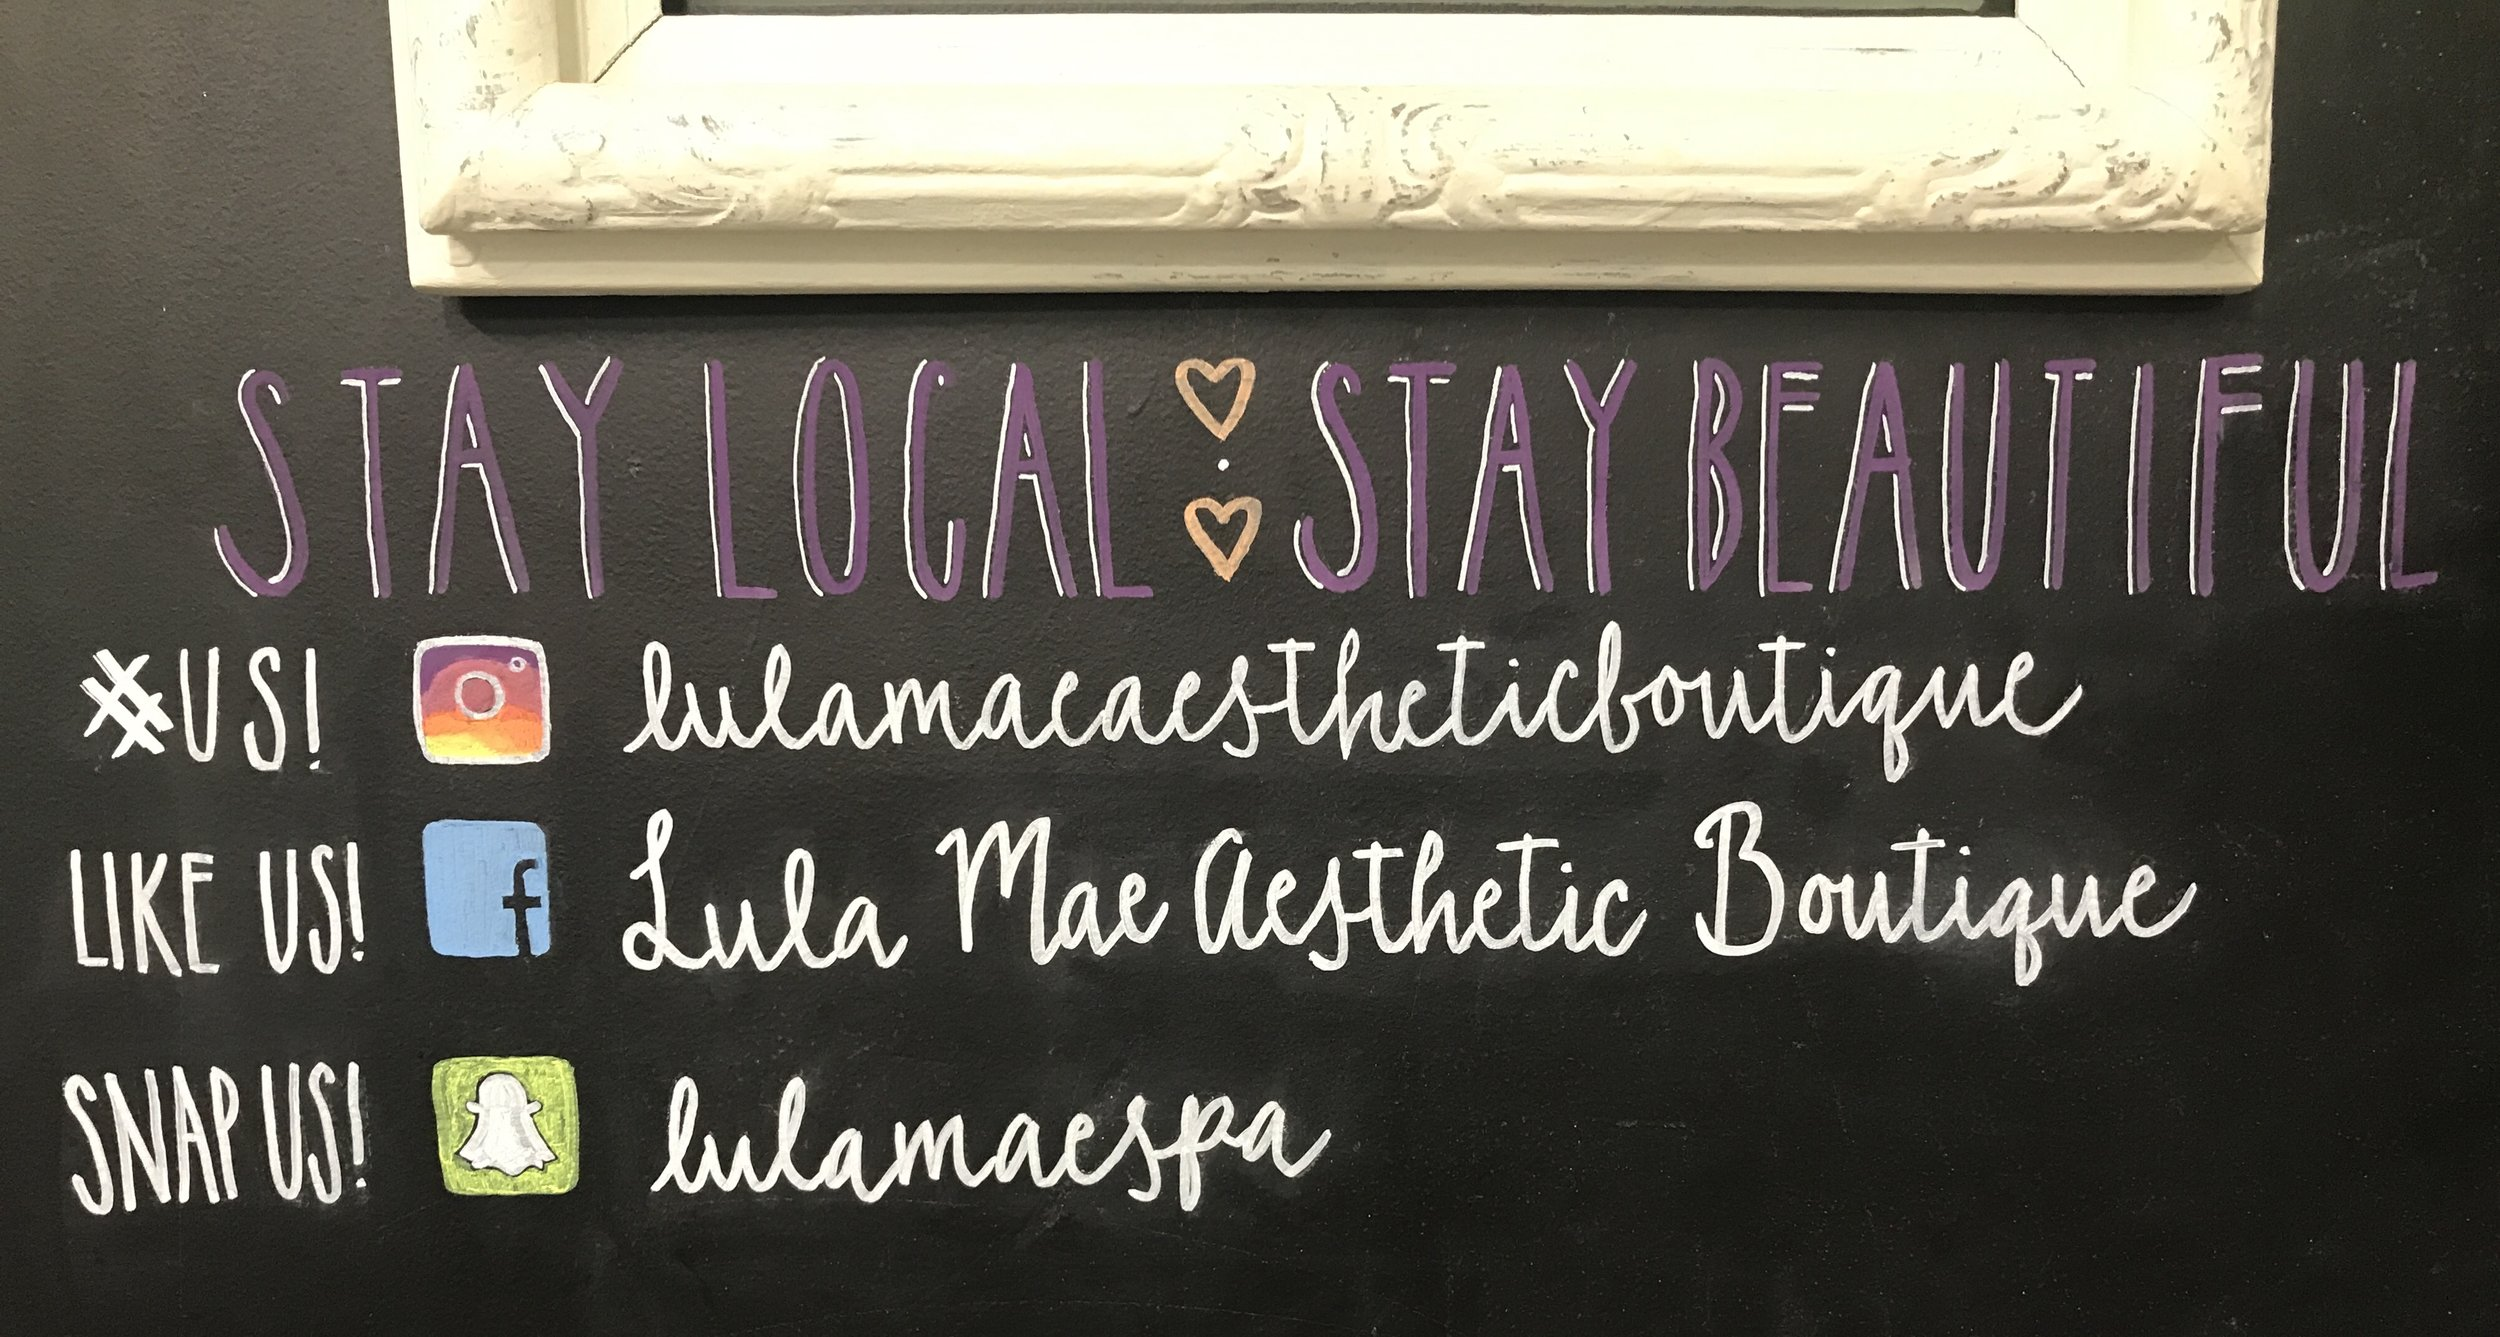 Follow us! - Stay up to date on current Lula Mae Spa trends. #lulamaespa